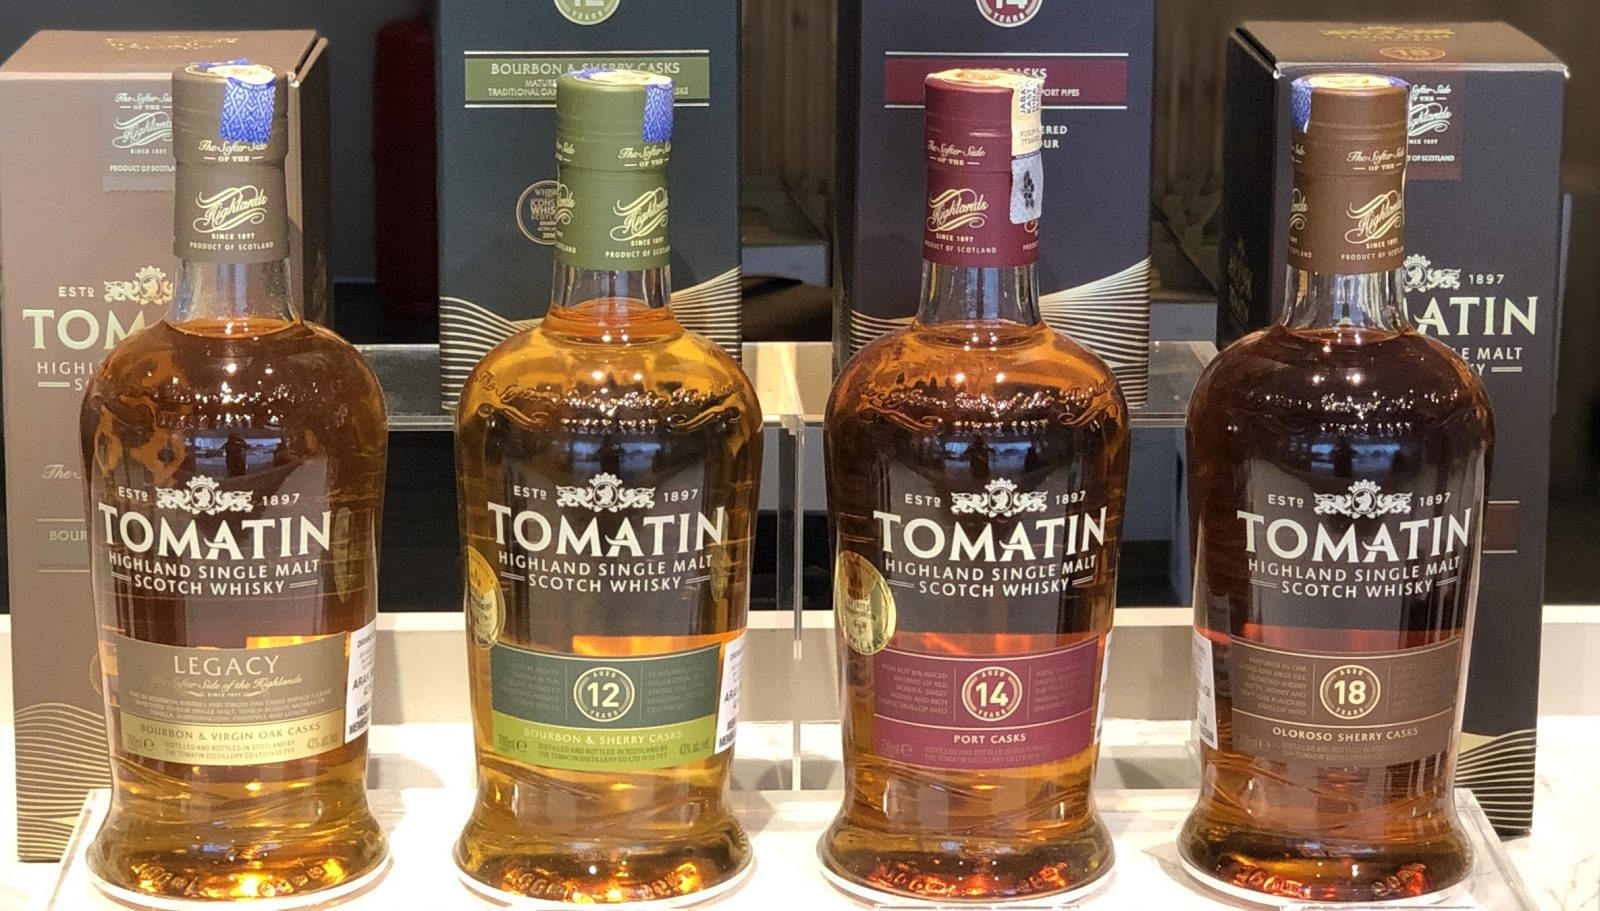 Tomatin single malt is part of March's Real Deals